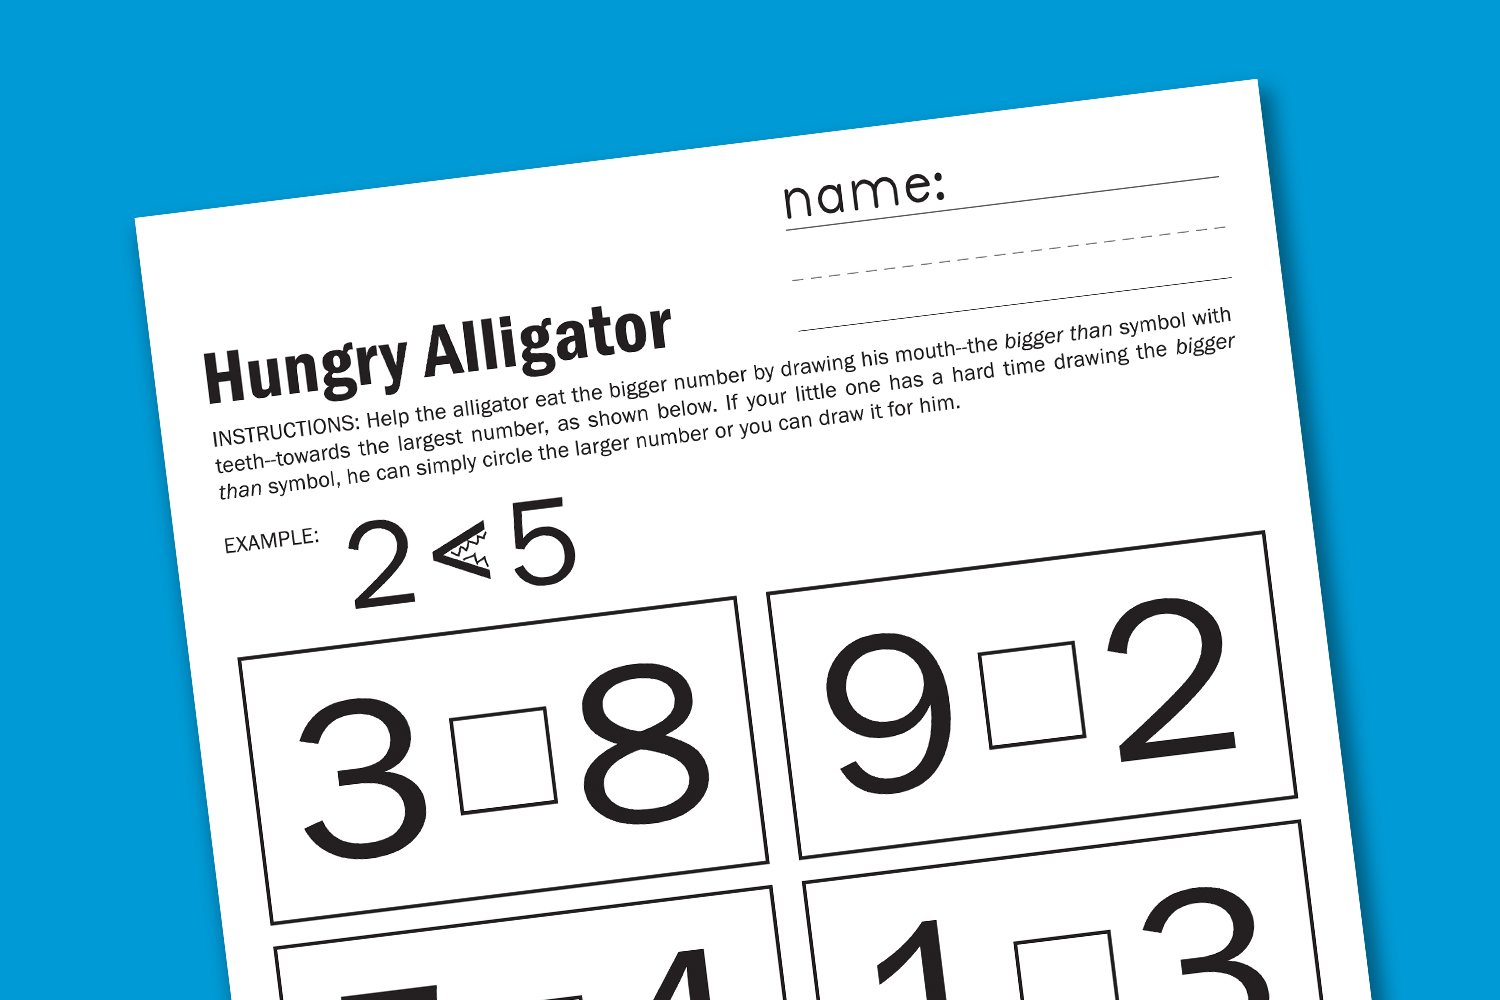 E Ddd F Aeb F A B furthermore Bigger Than Early Math Worksheet Free Printable together with Bigger Than Early Math Worksheet Free Printable X moreover De F D Aa E Dd Ba Bbb Math Worksheets Learning Activities likewise  on hungry alligator math free printable worksheets paging supermom bigger